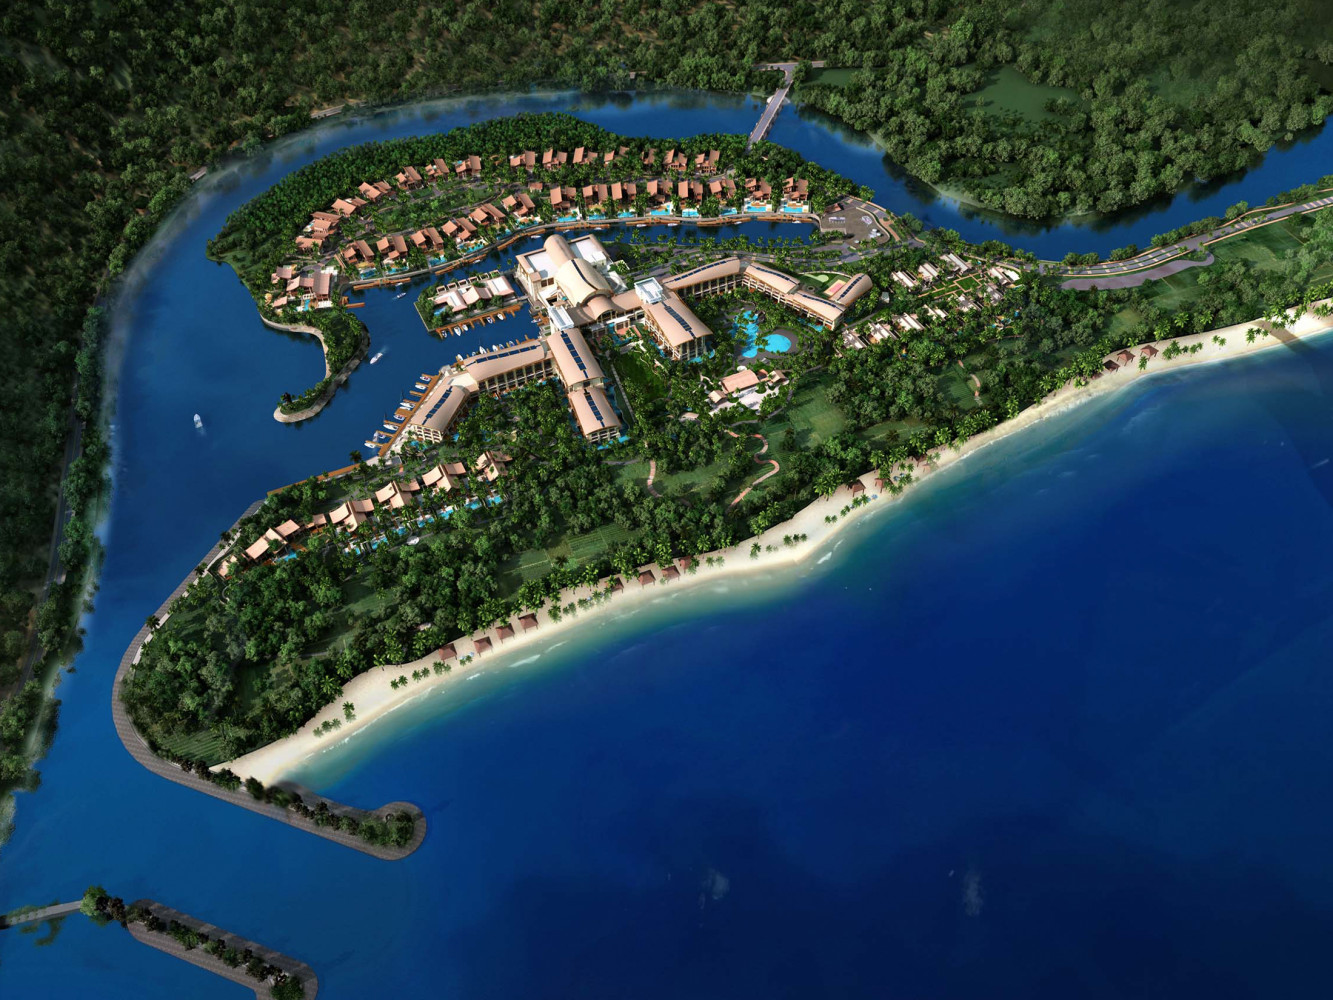 Sanya St. Regis Yalong Bay Resort, by Archilier Architecture